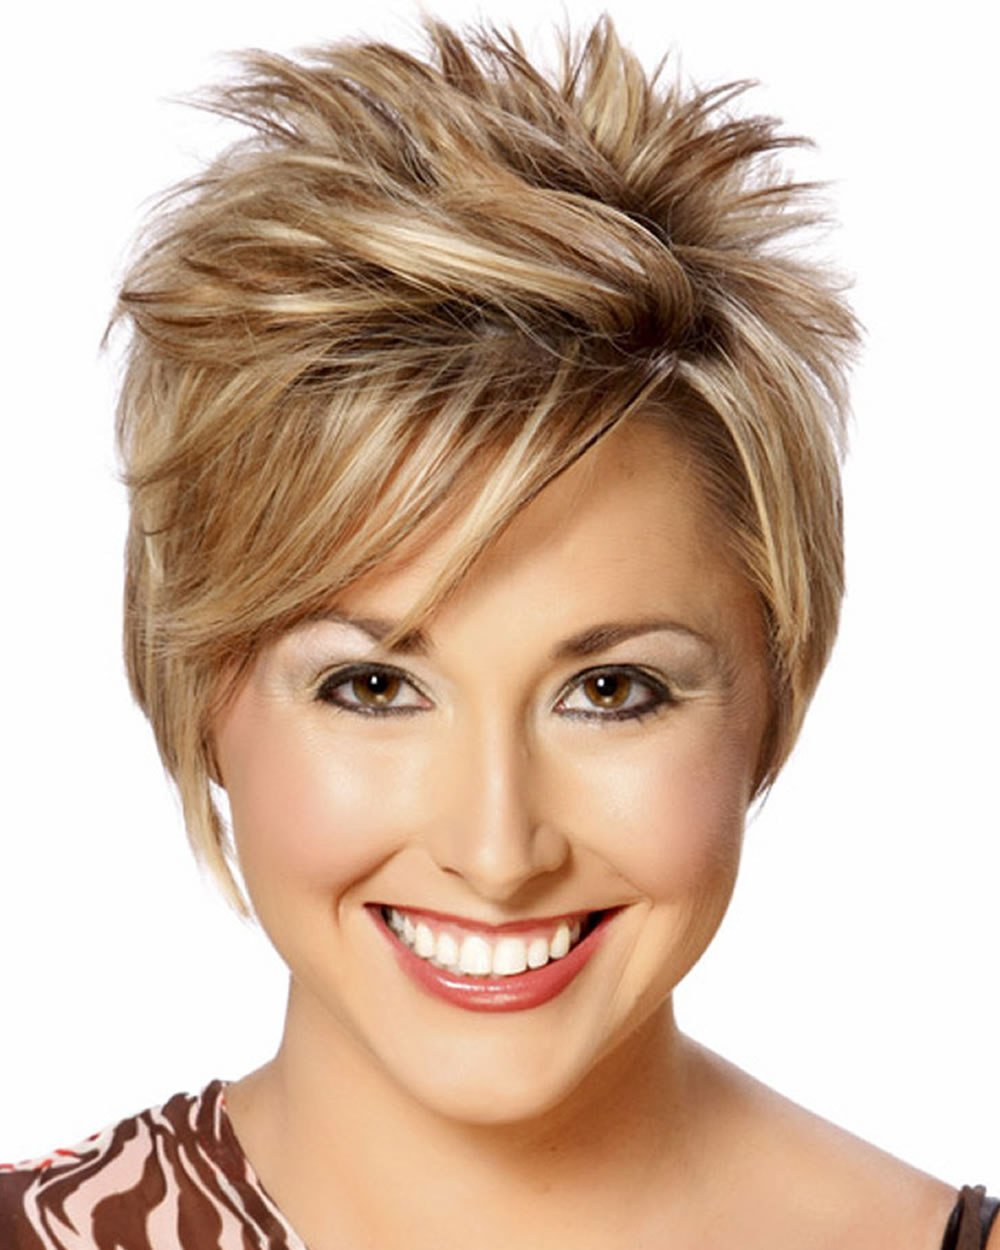 The Best Short Spiky Haircuts Hairstyles For Women 2018 – Hairstyles Pictures